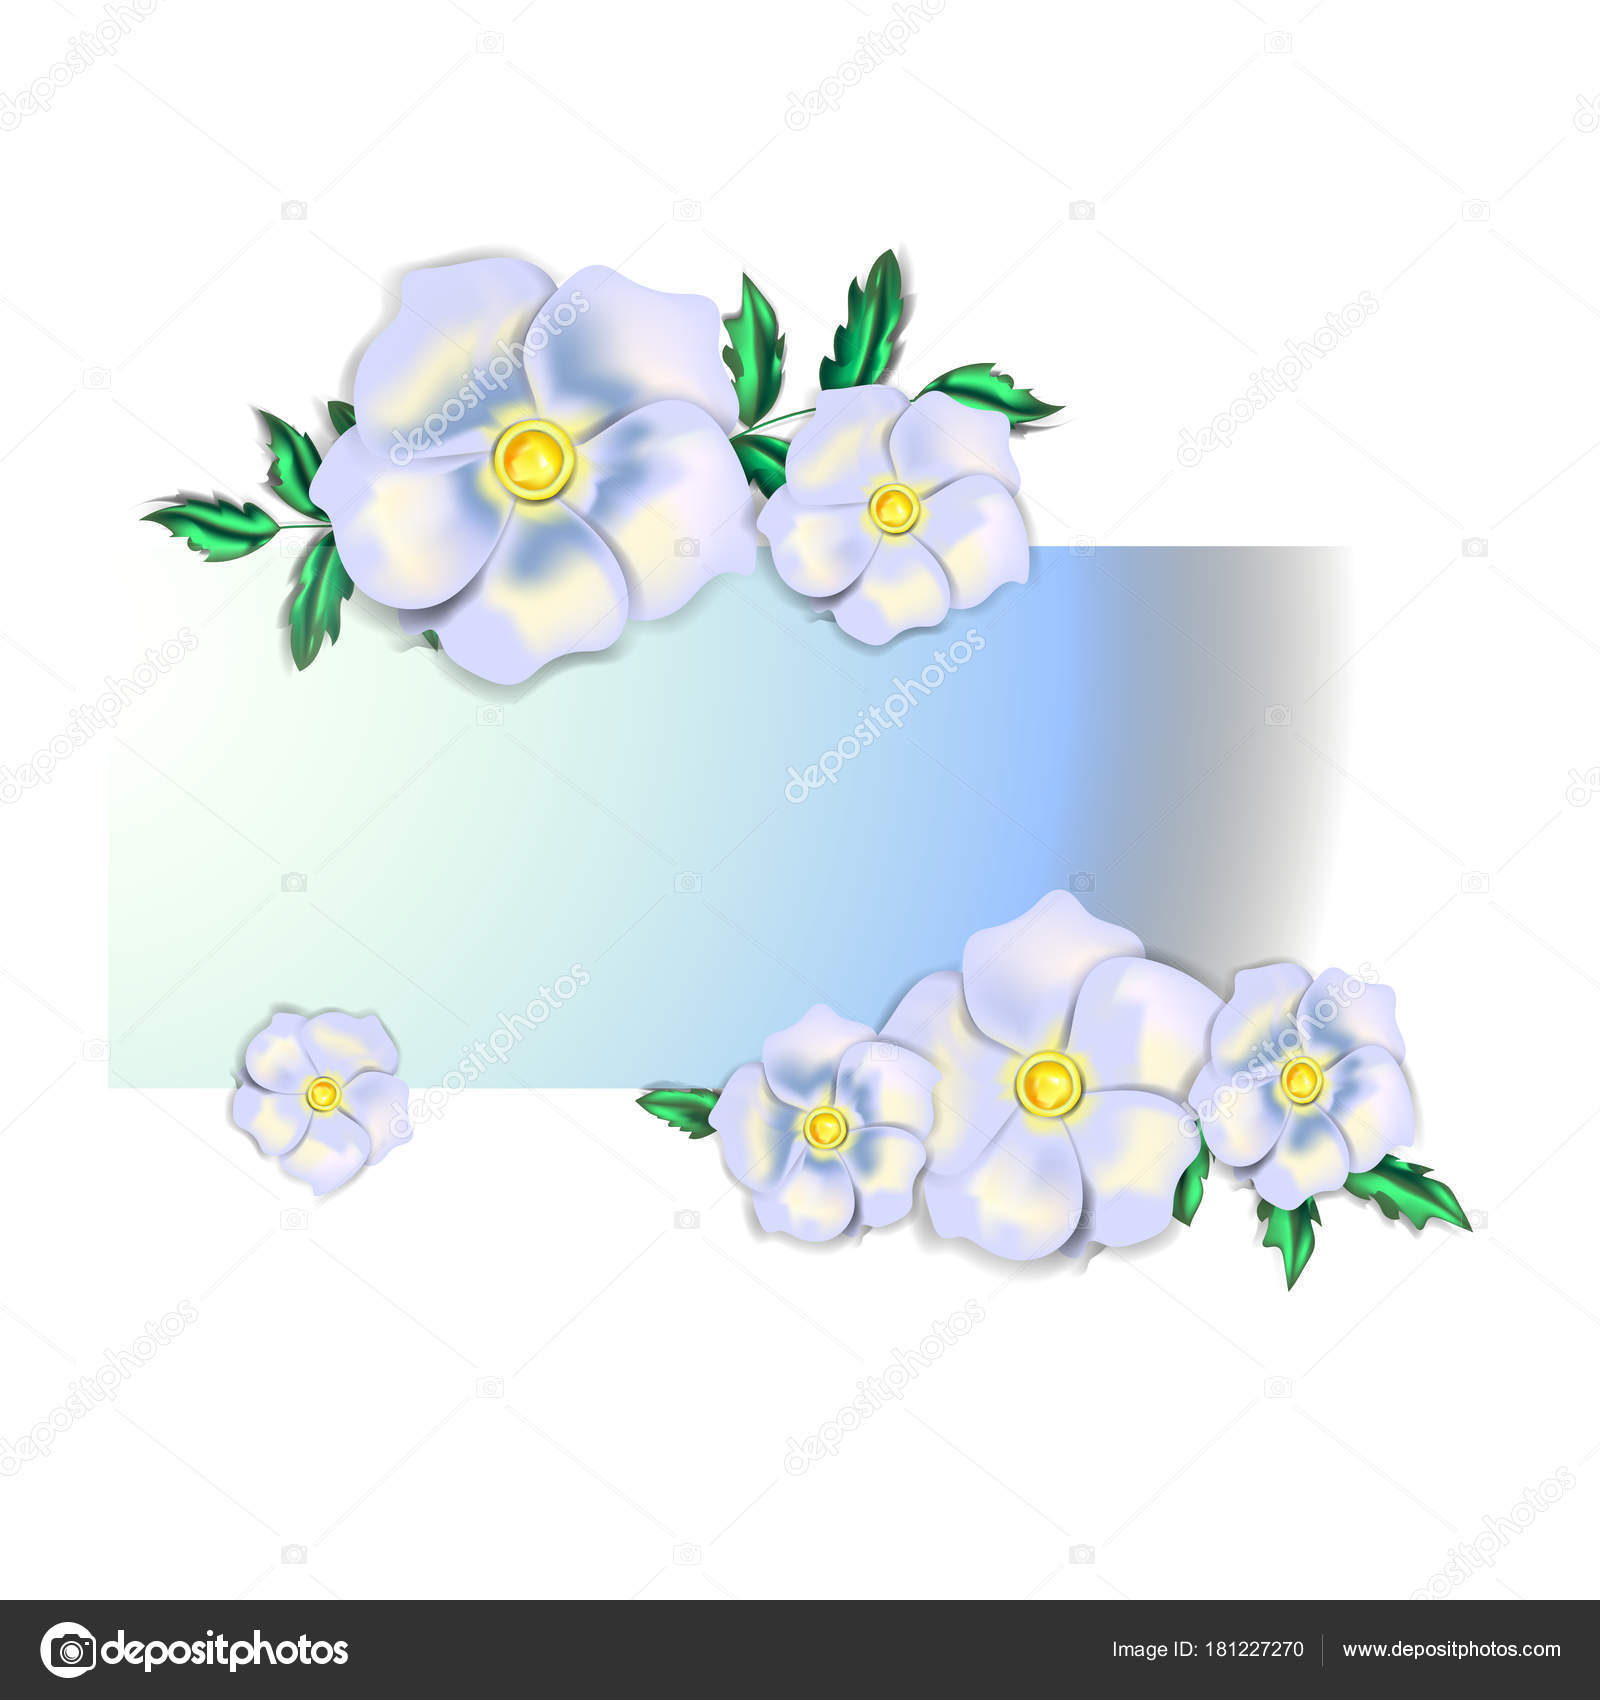 Frame with silk flowers in light blue colors stock vector frame with silk flowers in light blue colors stock vector izmirmasajfo